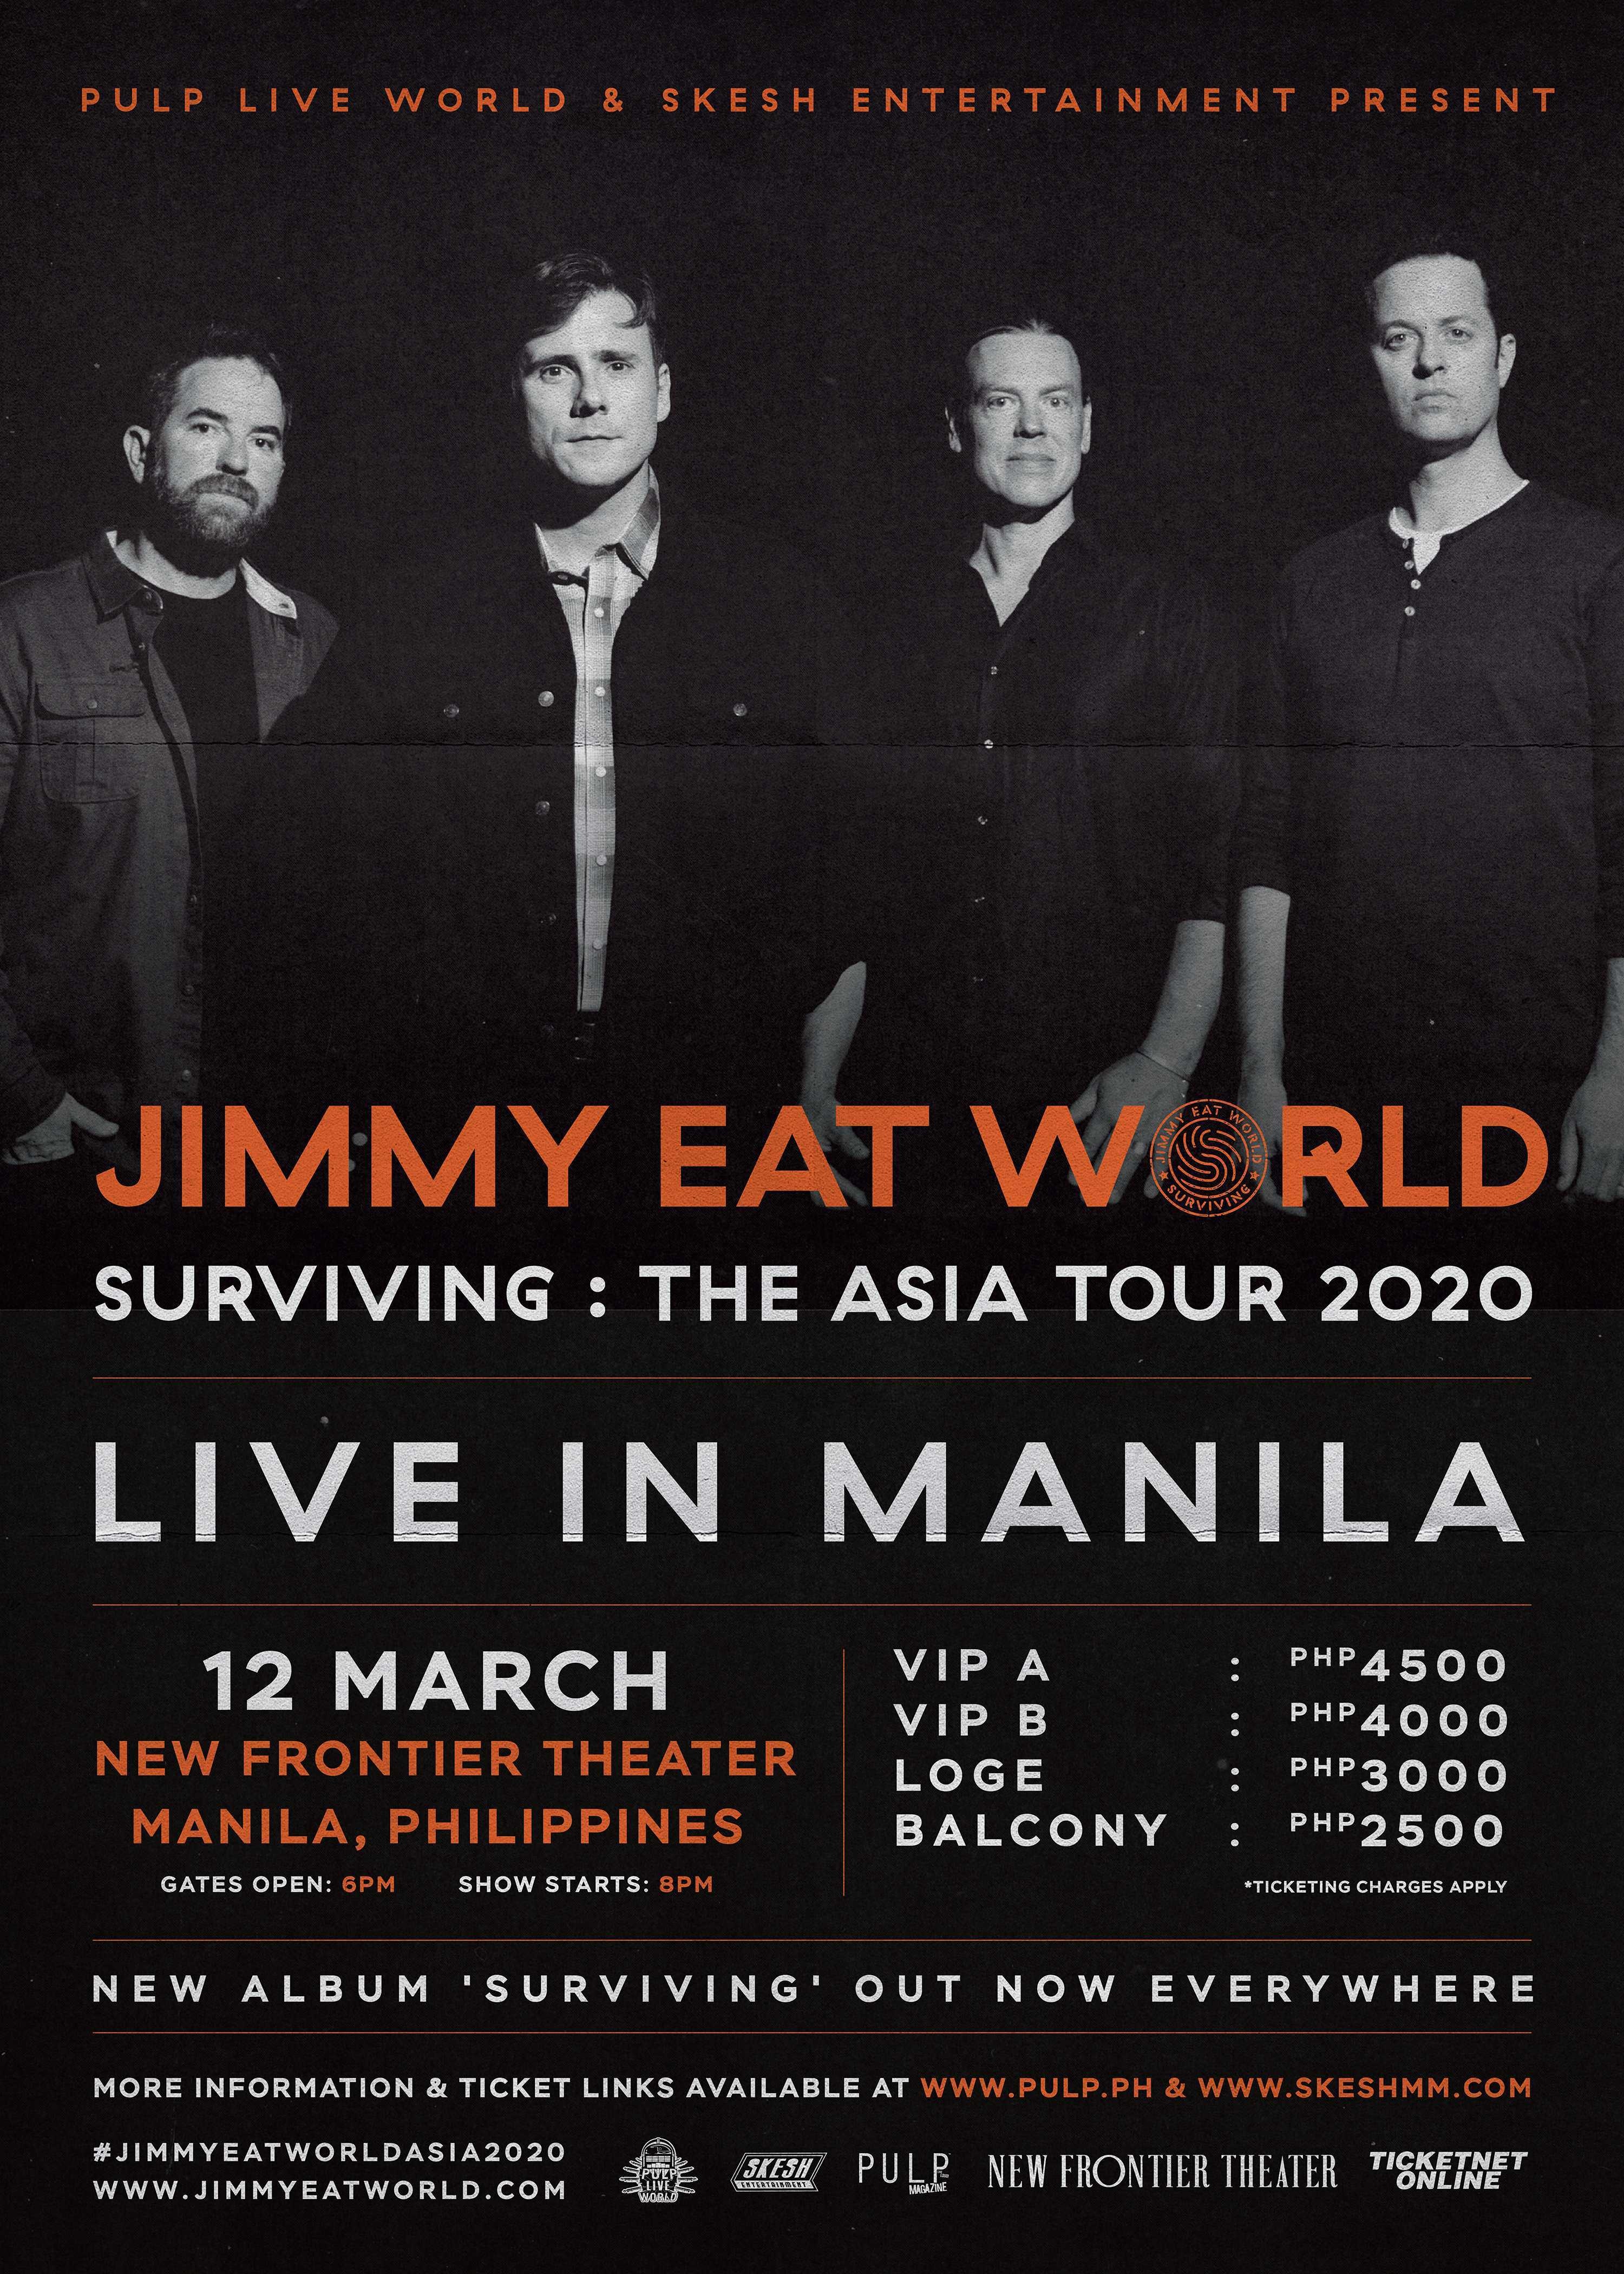 JIMMY EAT WORLD LIVE IN MANILA — SURVIVING: THE ASIA TOUR 2020